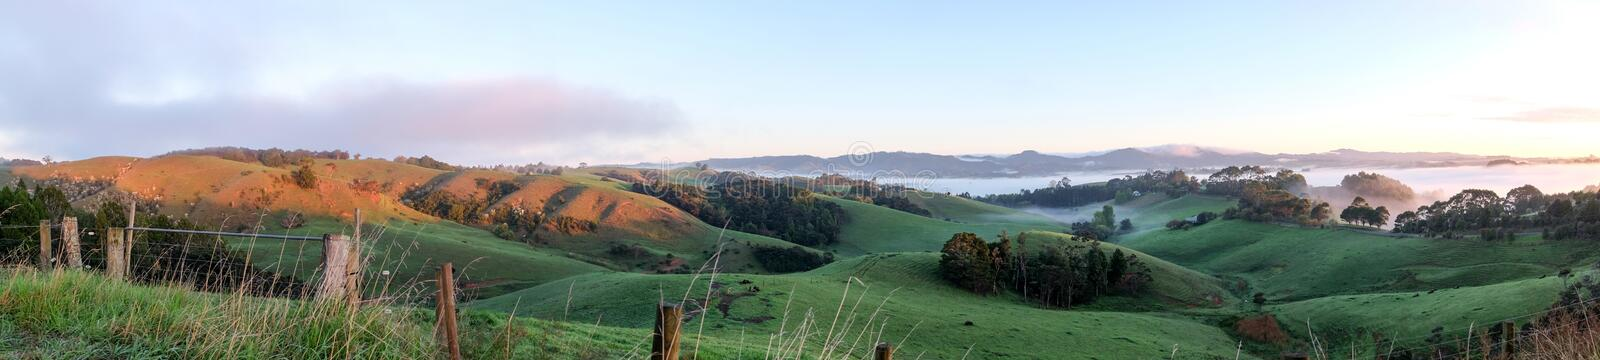 Rural landscape panoroma Warkworth, North Island, New Zealand NZ. Rural landscape panoroma Warkworth, north of Auckland, North Island, New Zealand NZ stock images